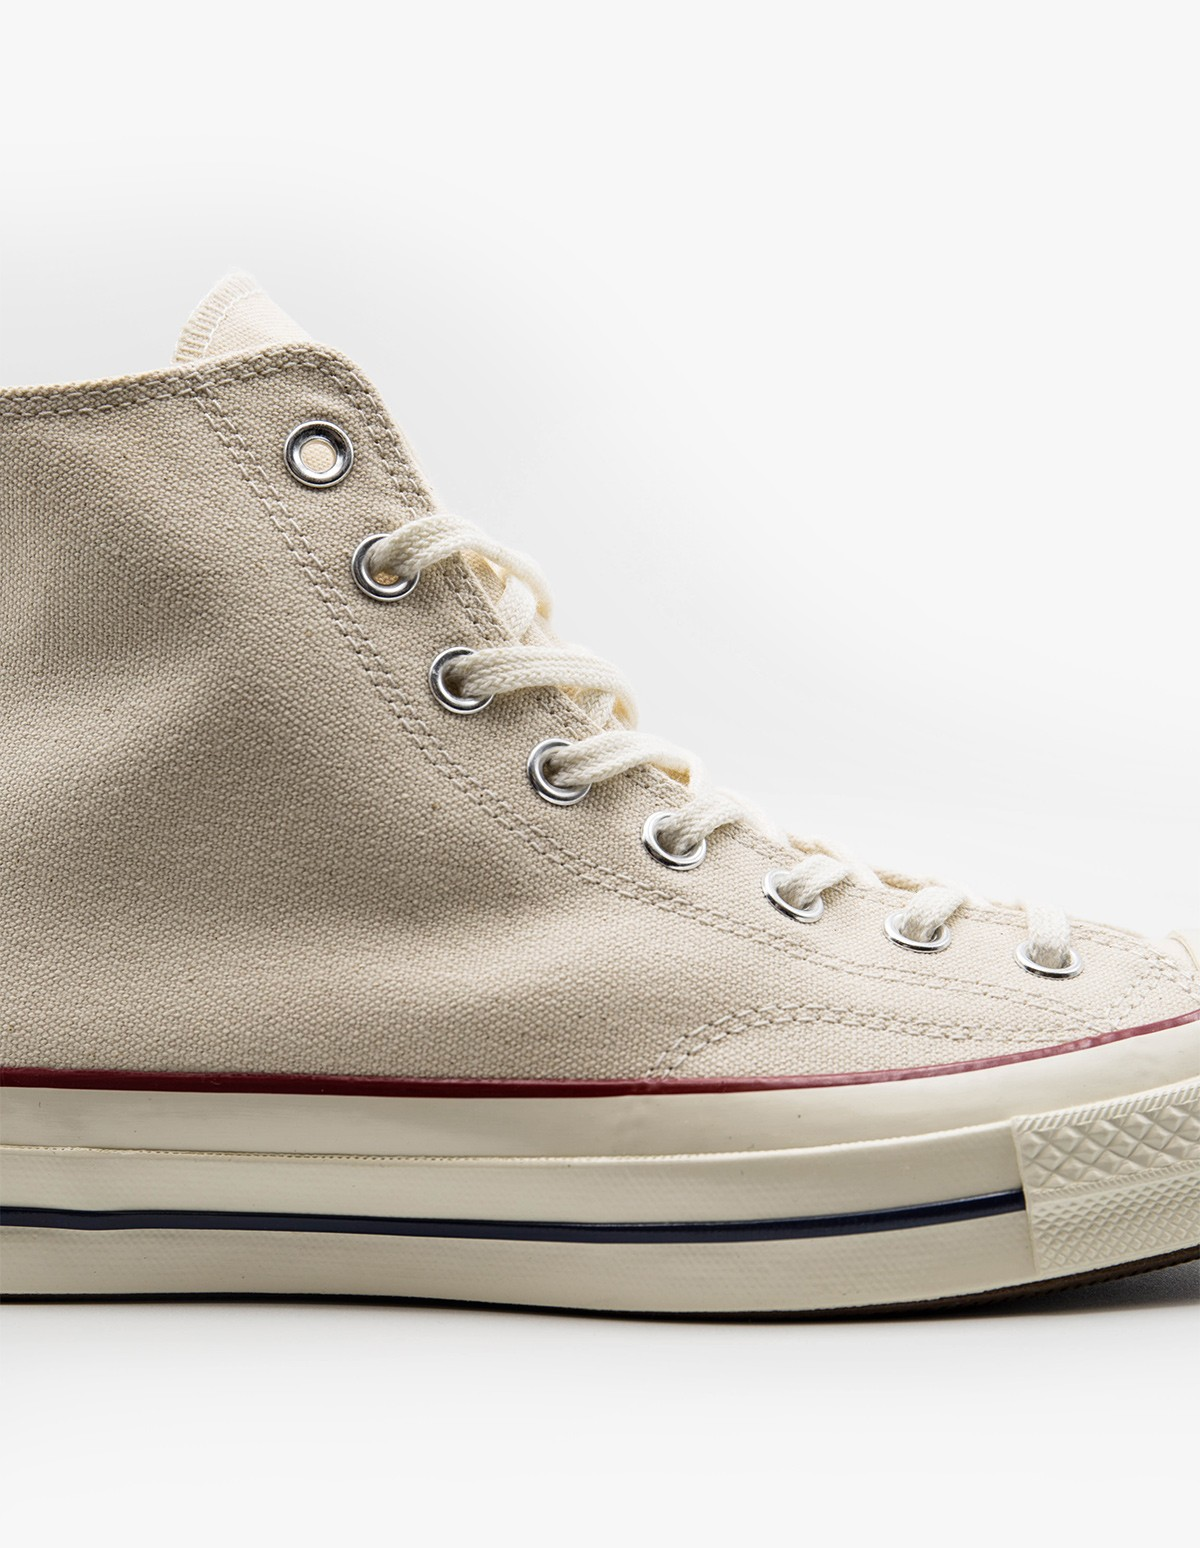 e1be2f2242a4 ... Converse Chuck Taylor High All Star  70 in Parchment ...